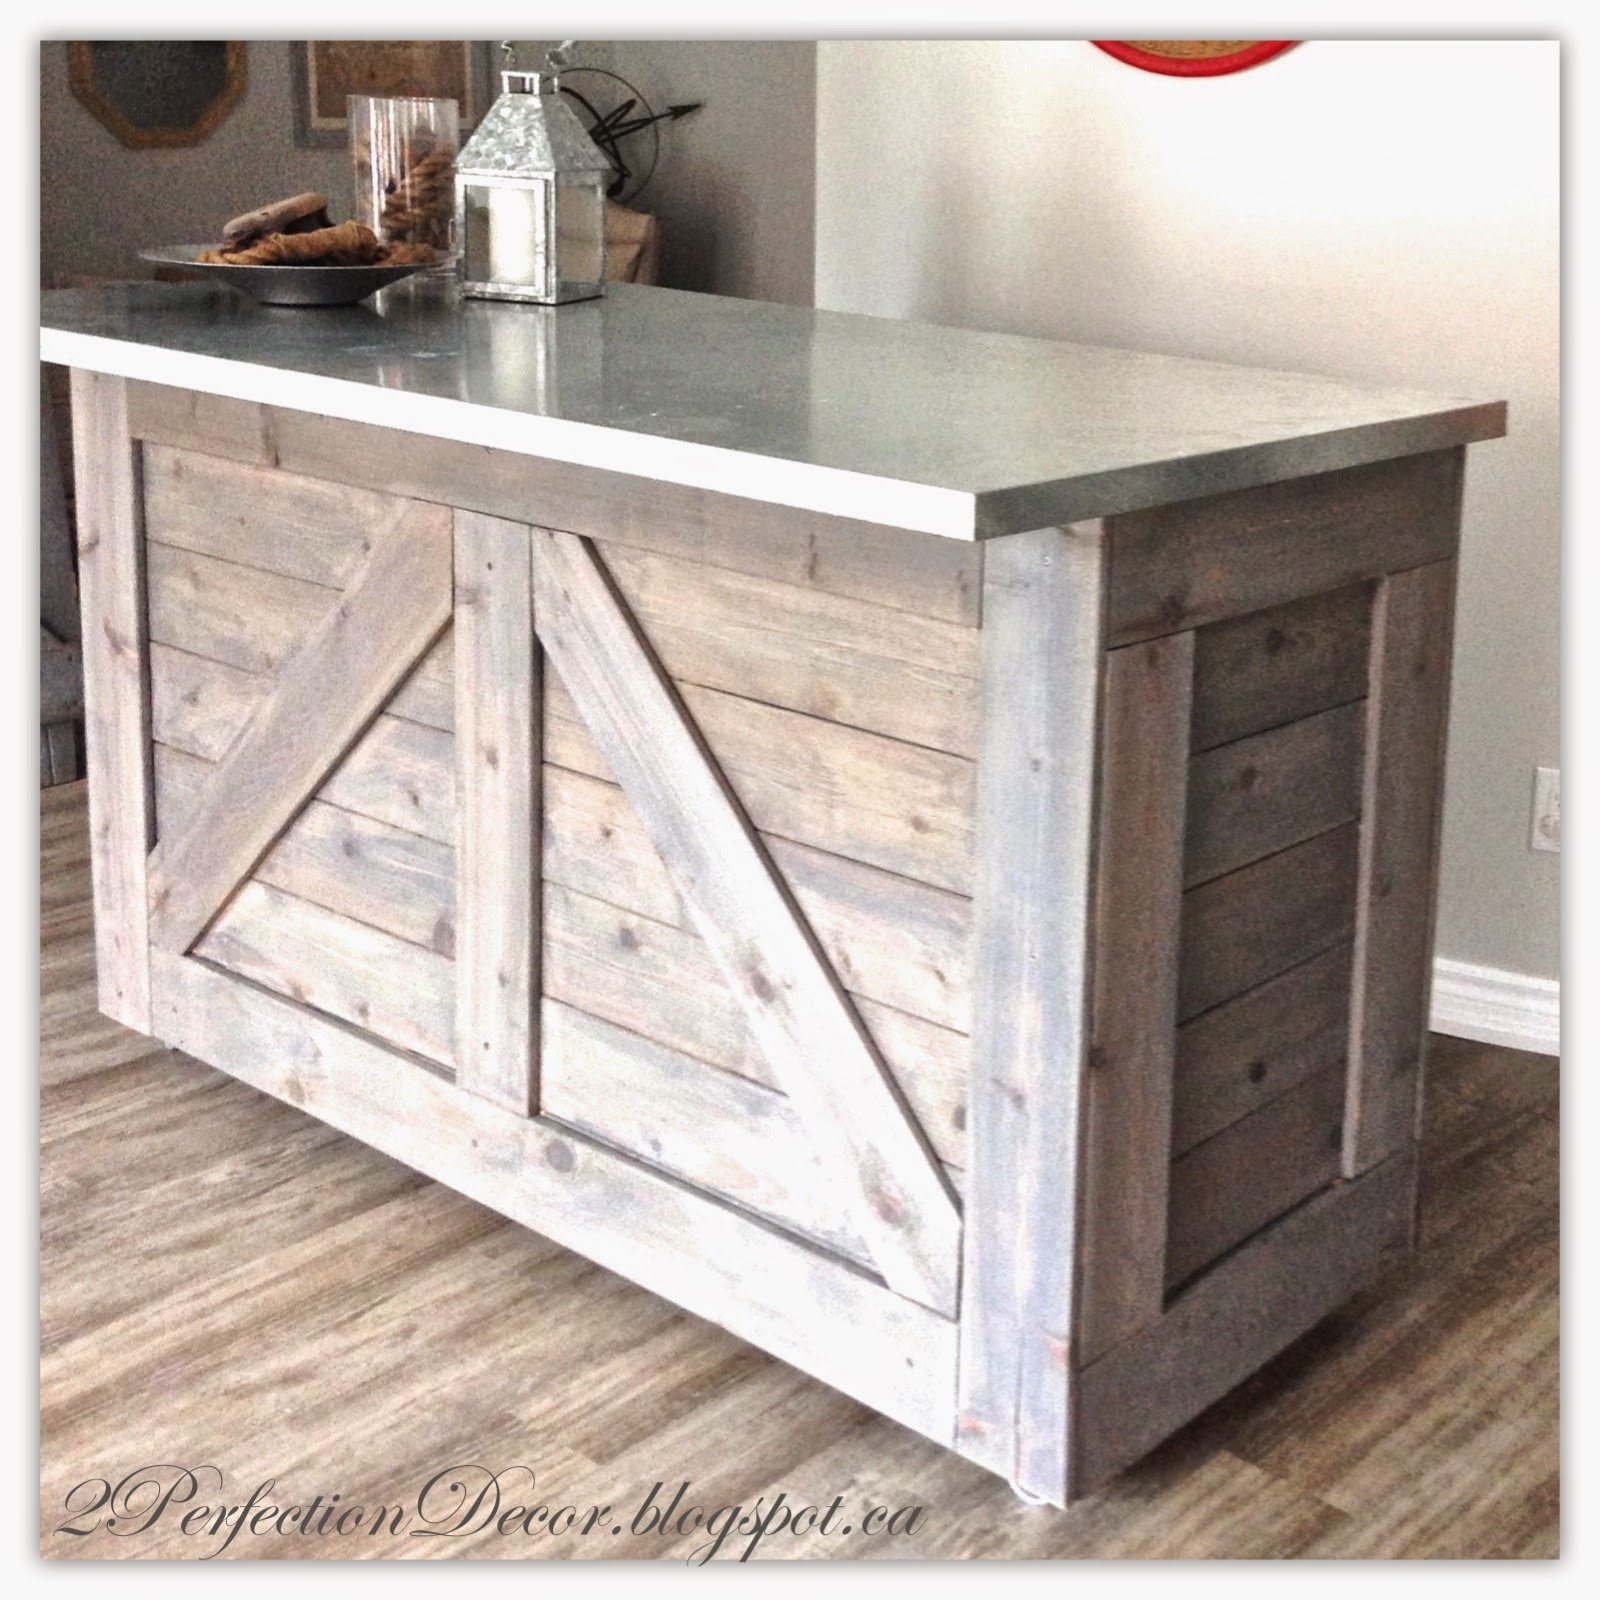 Charmant DIY Rustic Bar From An IKEA Cabinet   Love The Metal Countertop!